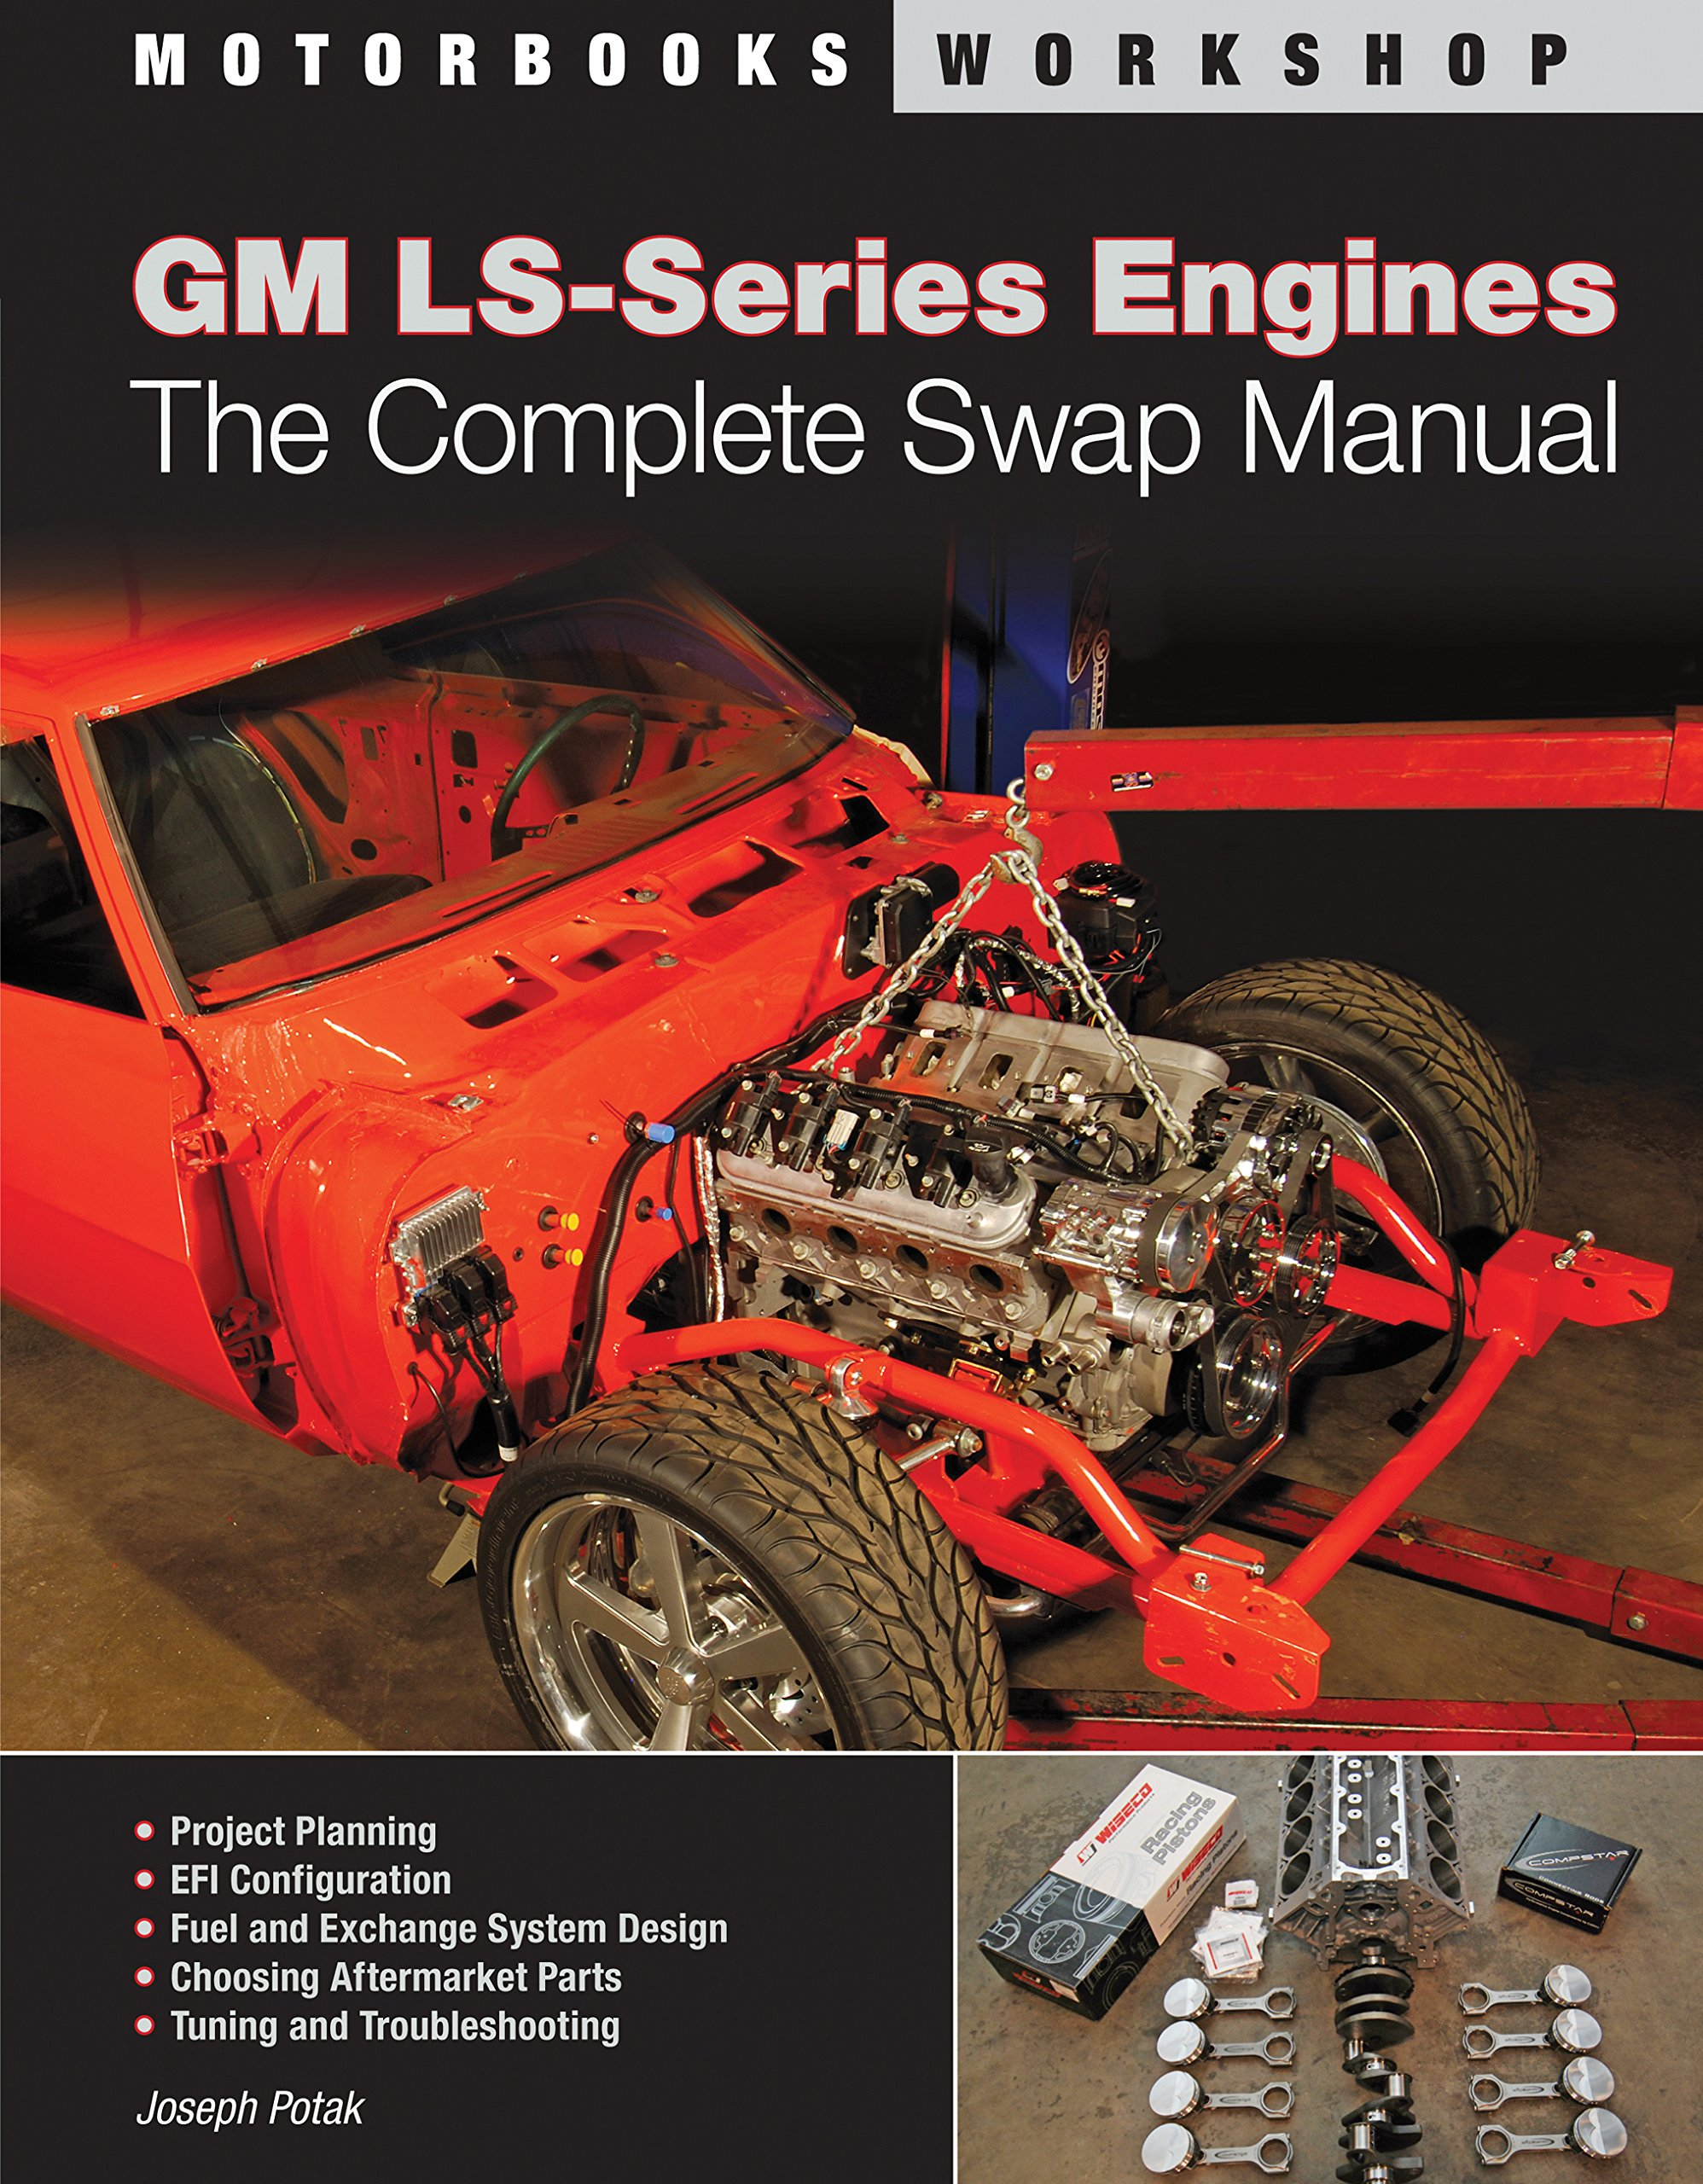 Gm Ls Series Engines The Complete Swap Manual Motorbooks Workshop Engine Cooling Diagram Joseph Potak 9780760336090 Books